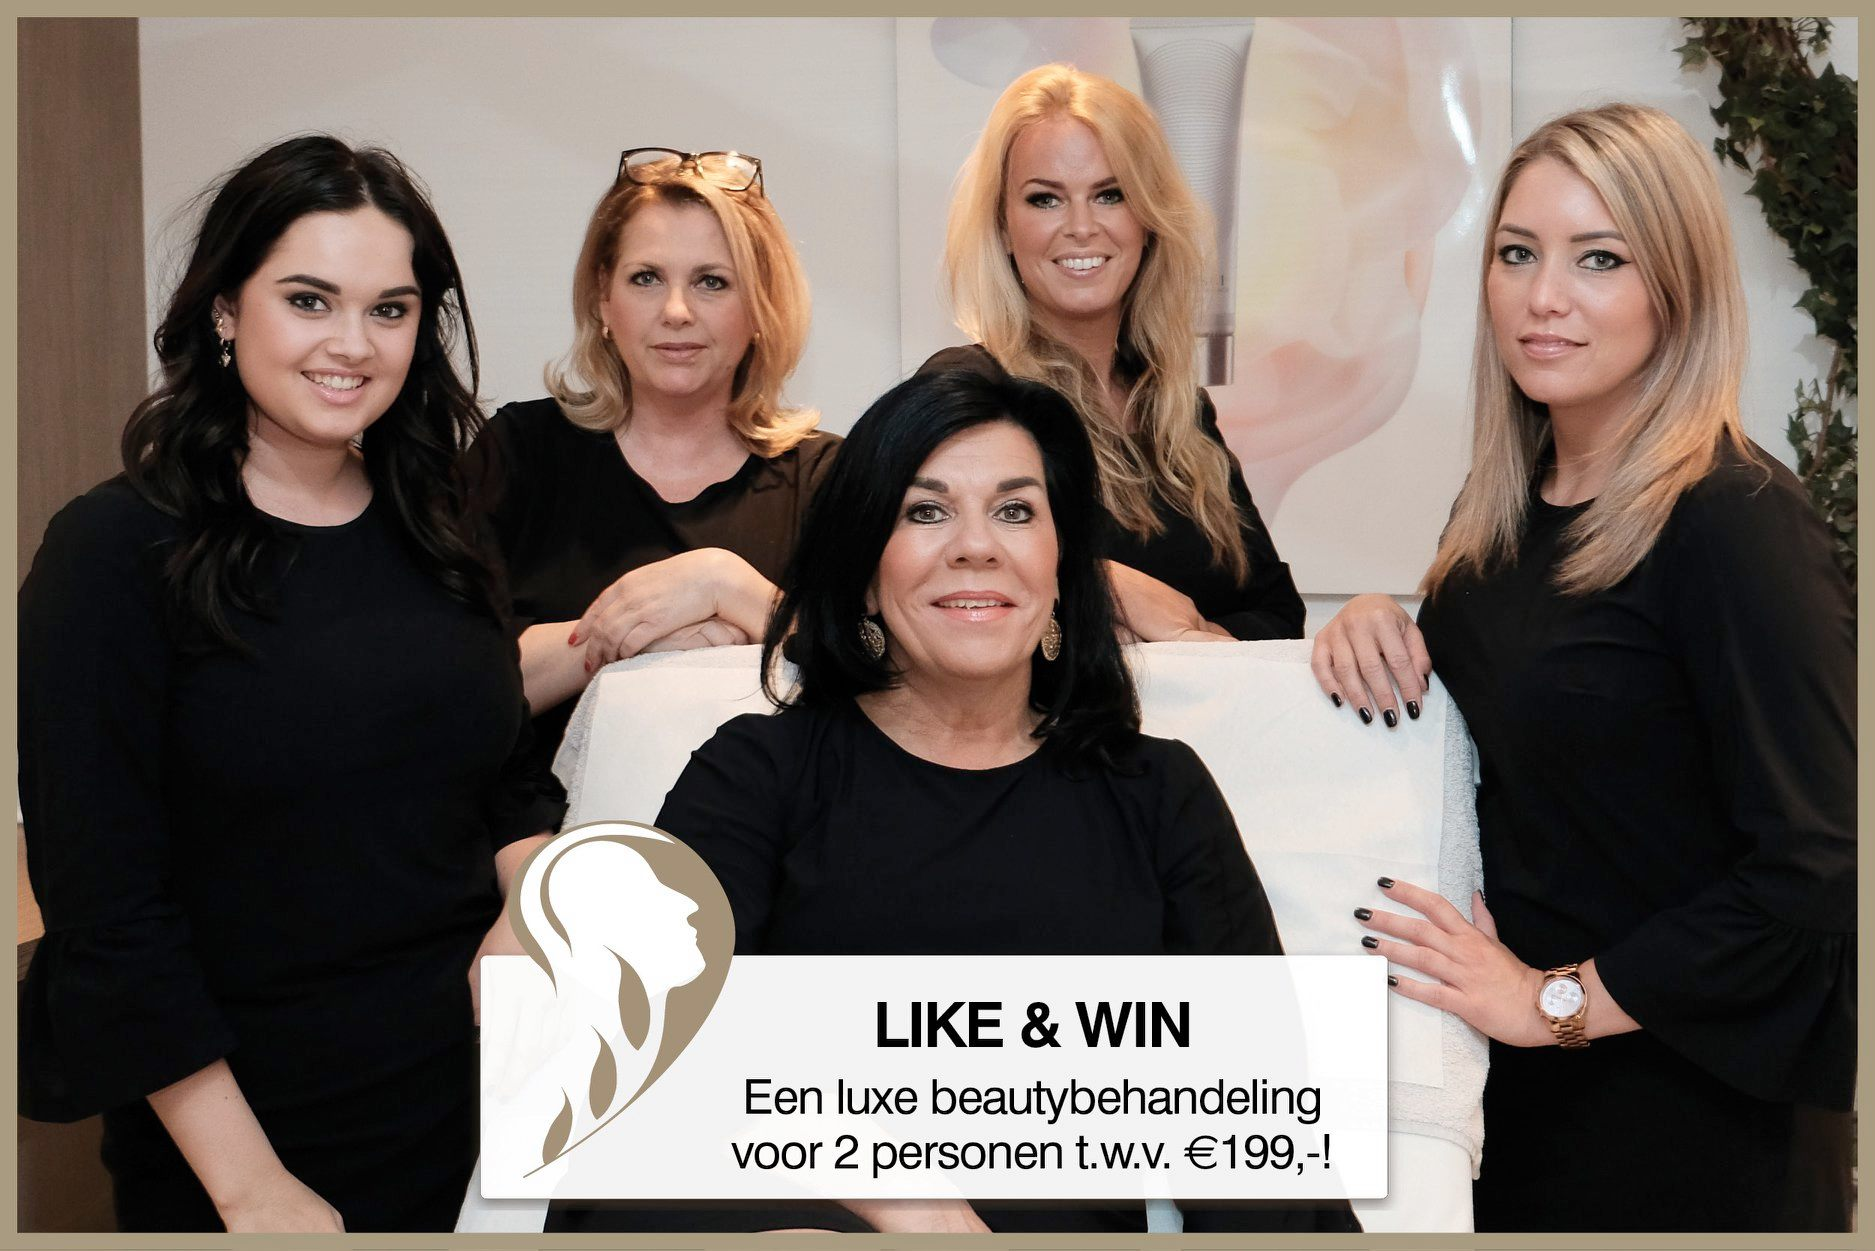 Like & win een luxe beautybehandeling